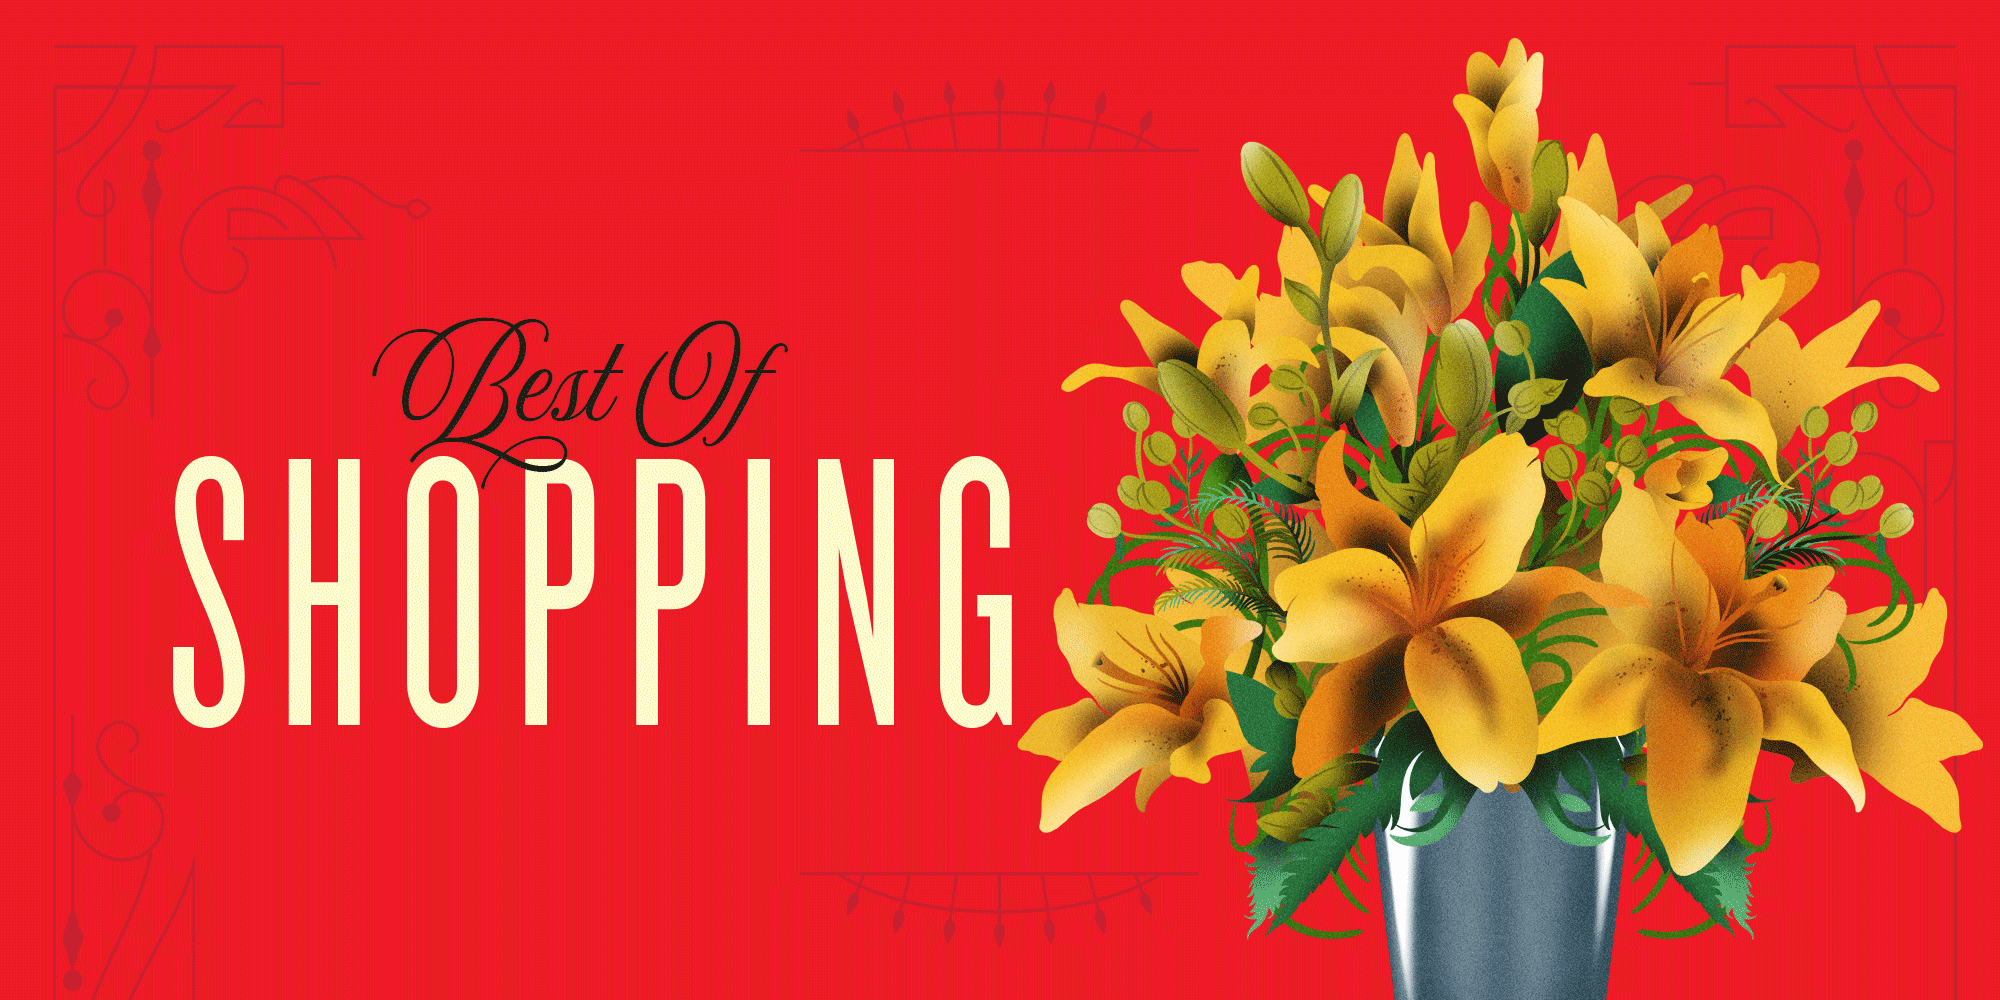 Best of 417 Shopping winners